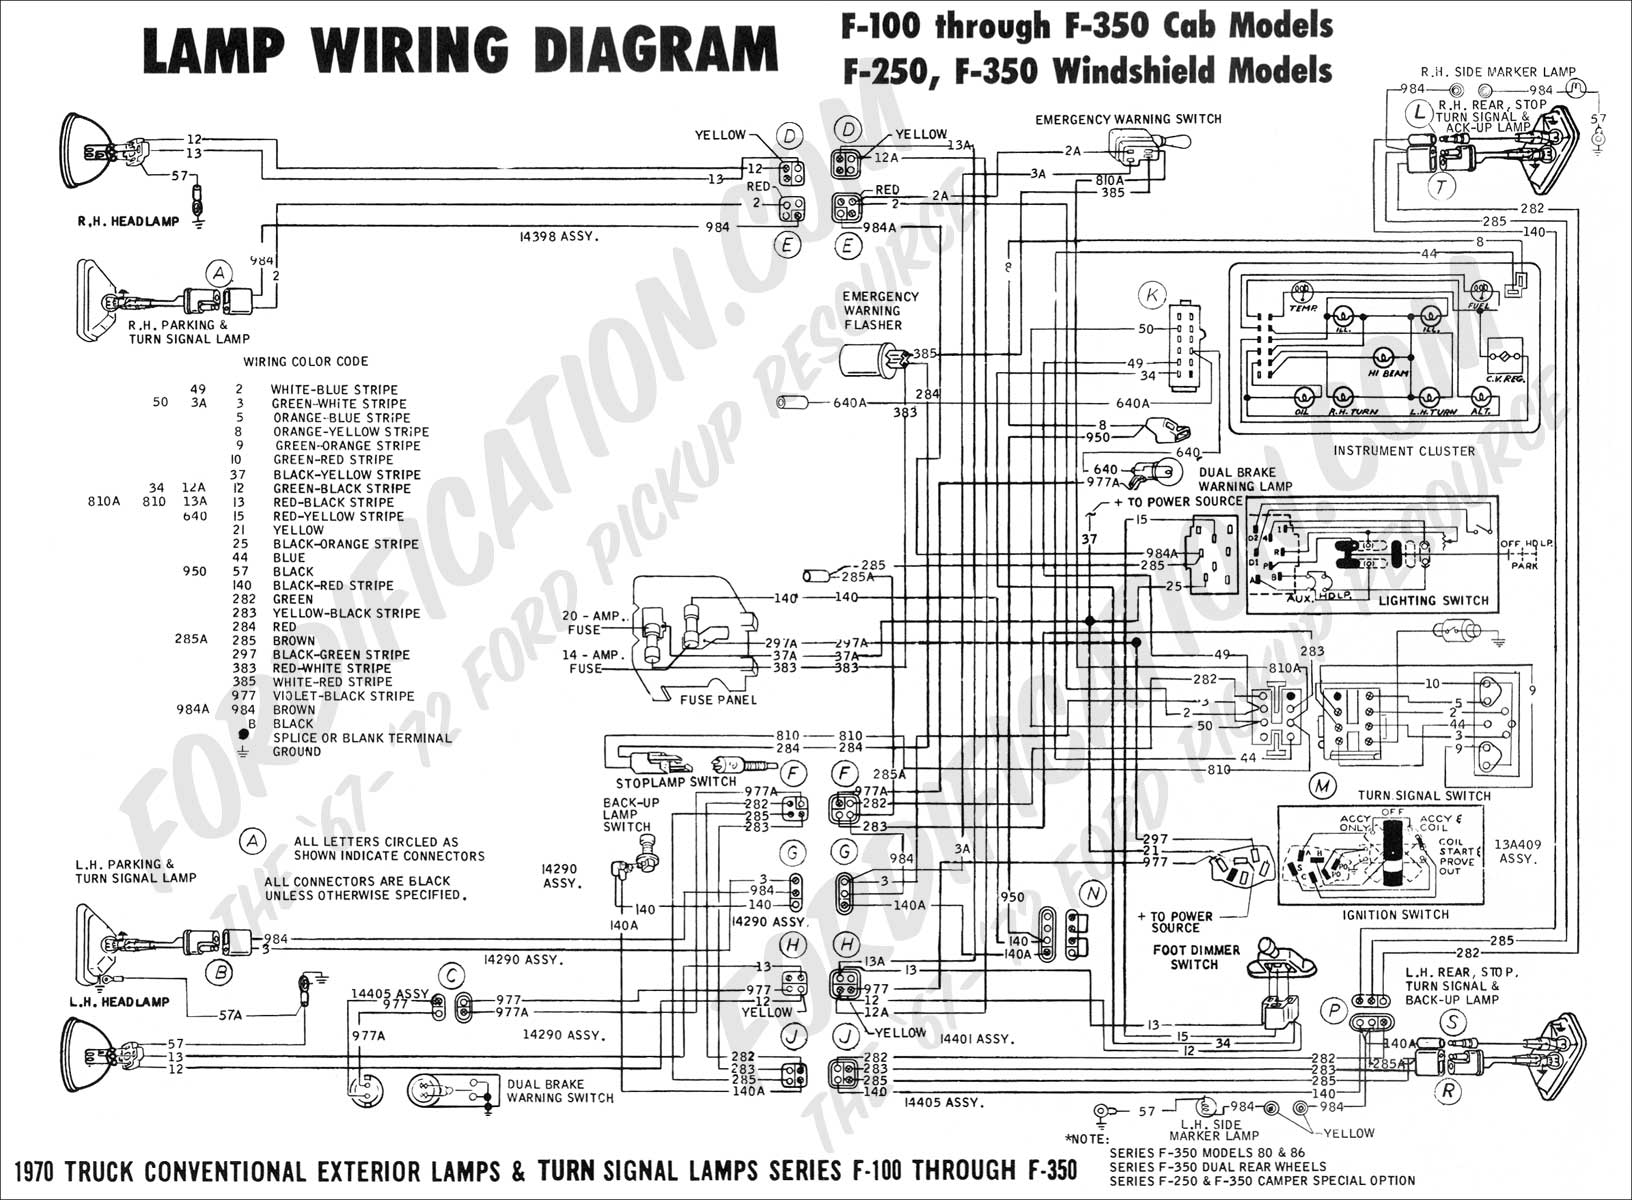 2013 ford f350 wiring harness diagram wiring diagram for light rh lomond tw Ford Factory Radio Wiring Diagram 1998 F350 Wiring Diagram